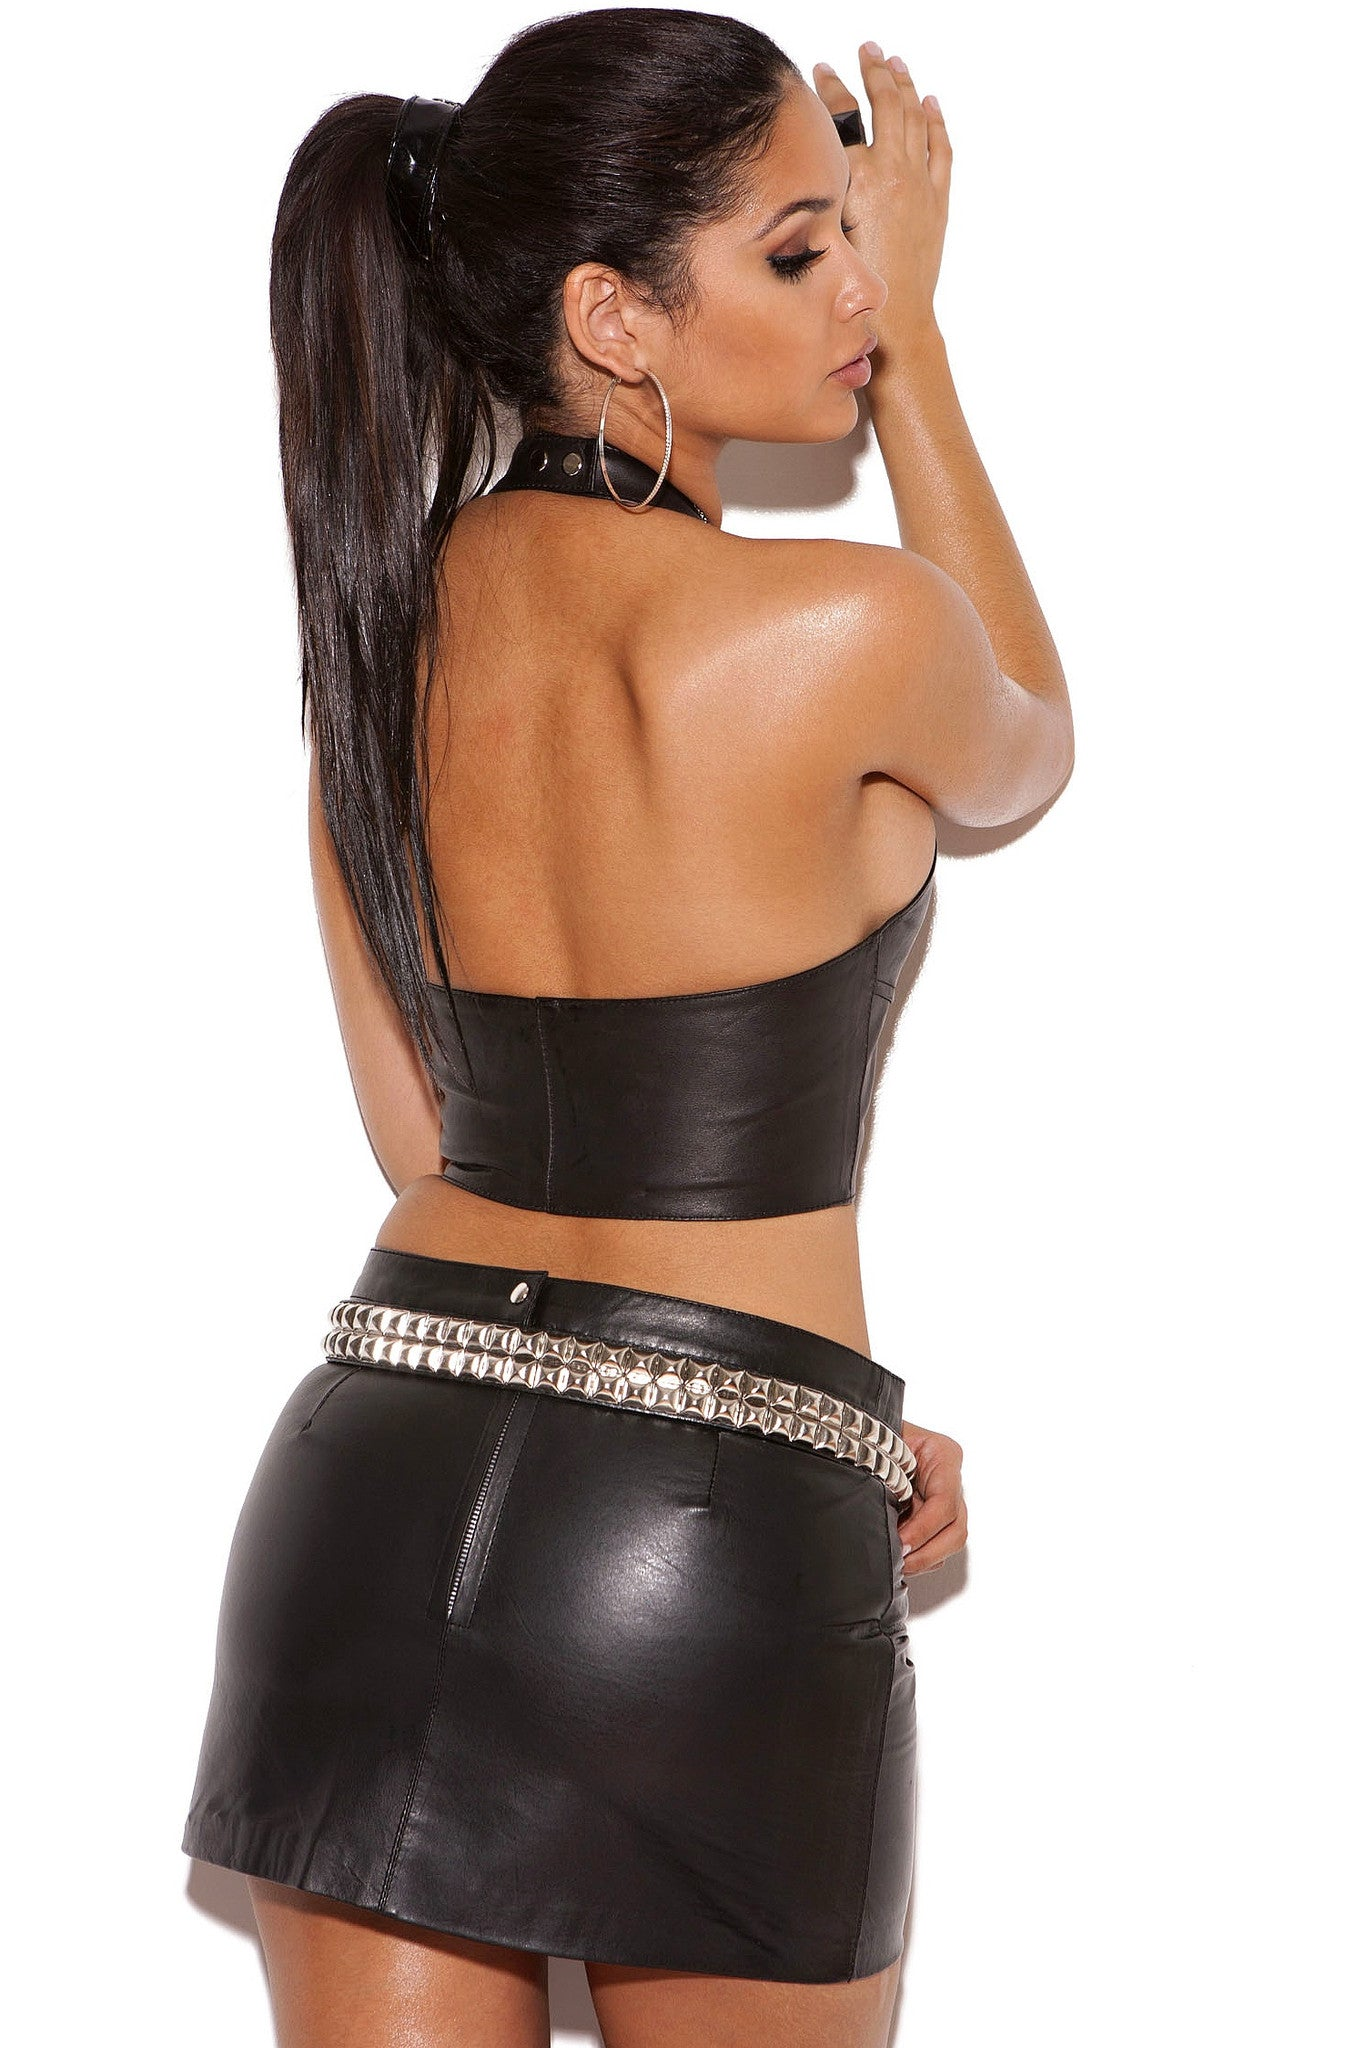 L4113 Leather top - Sexylingerieland  - 2